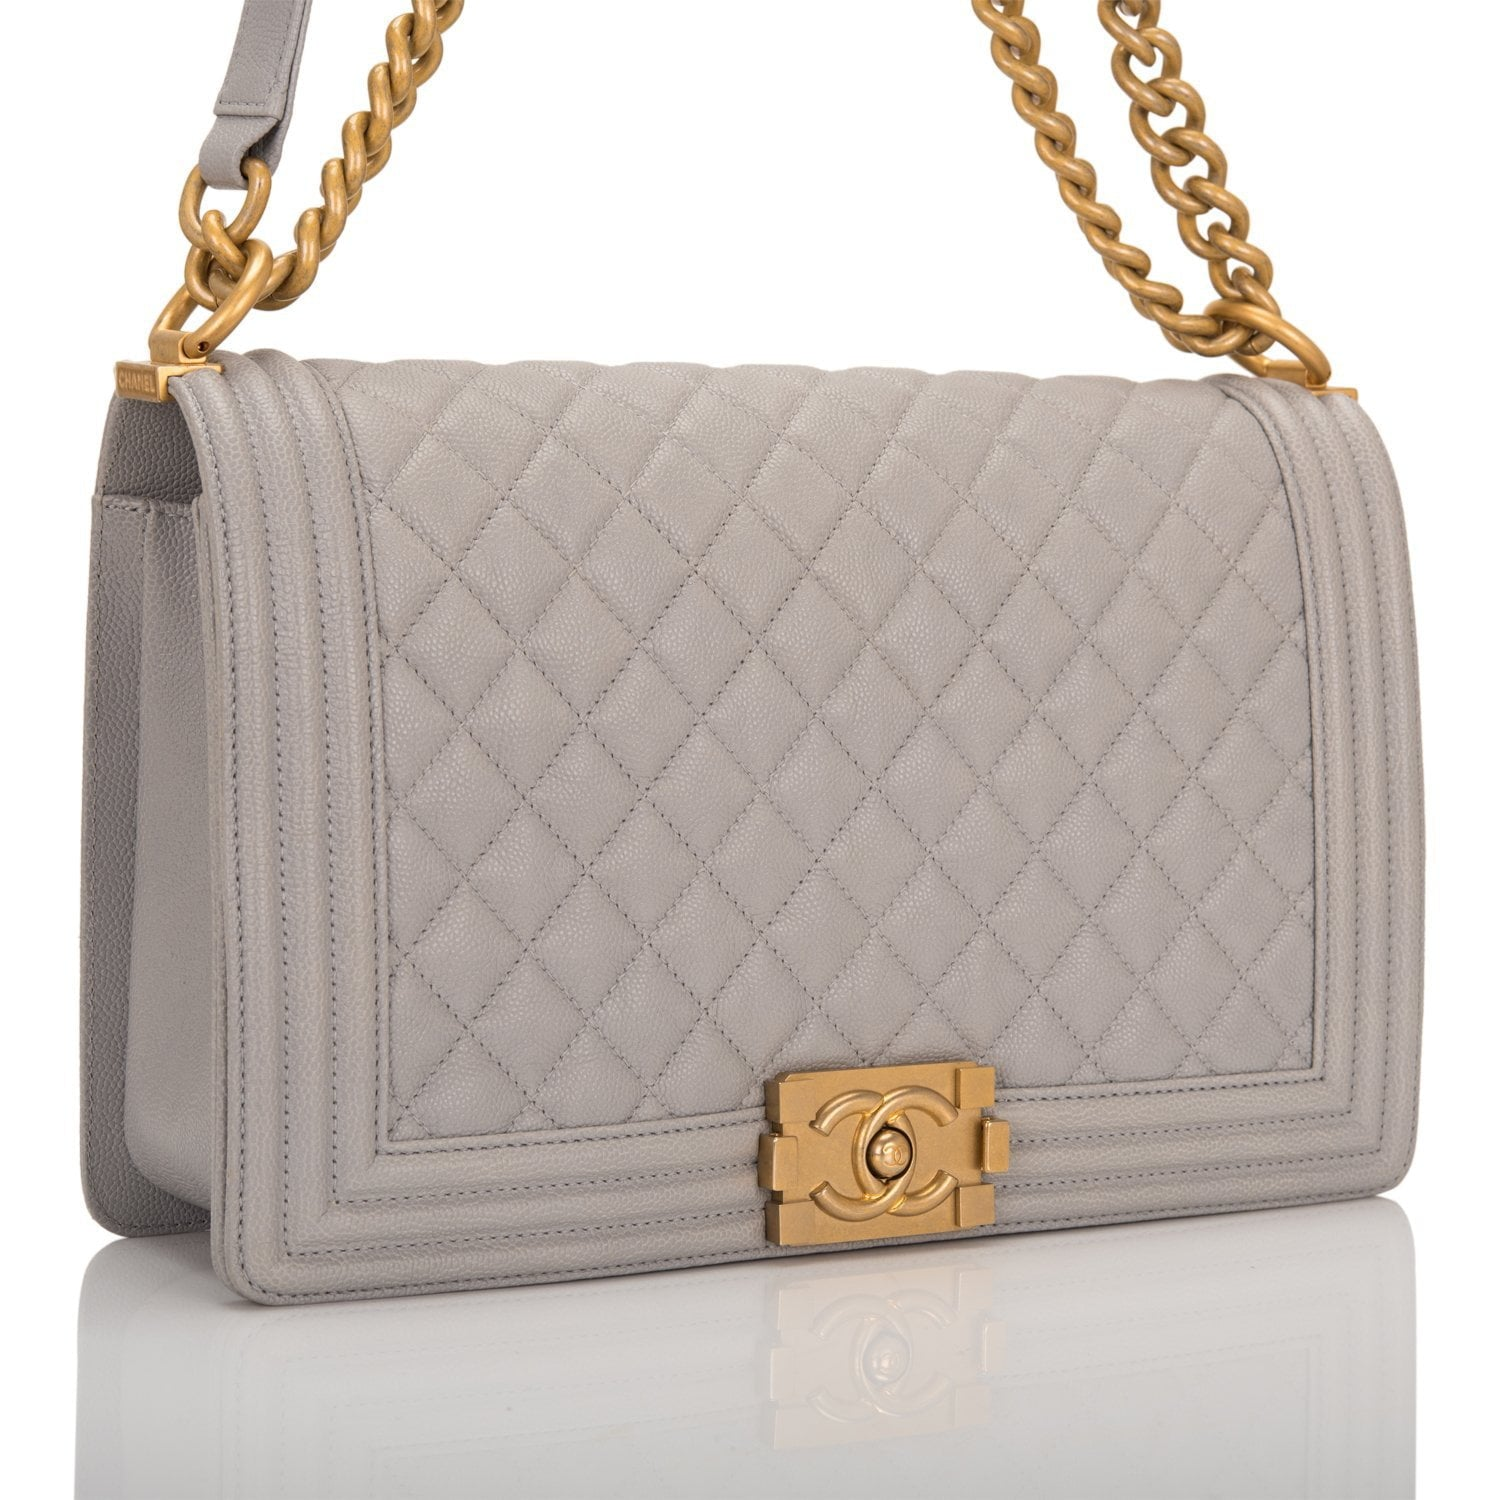 c129f420b883 Chanel Grey Quilted Caviar New Medium Boy Bag – Madison Avenue Couture